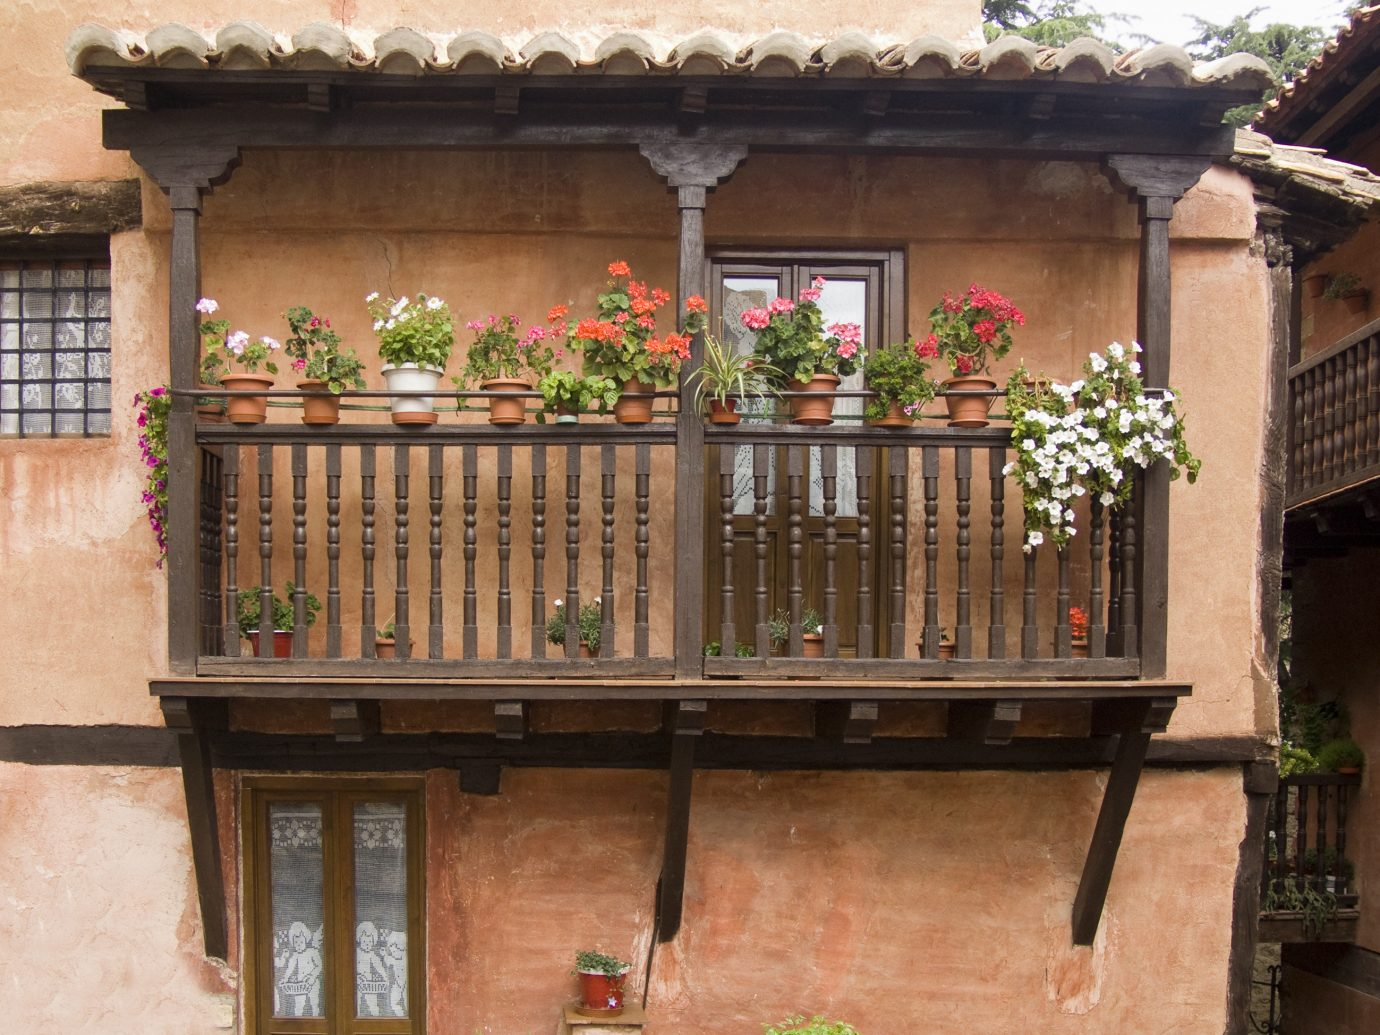 europe Spain Trip Ideas Balcony property facade iron window baluster house outdoor structure gate